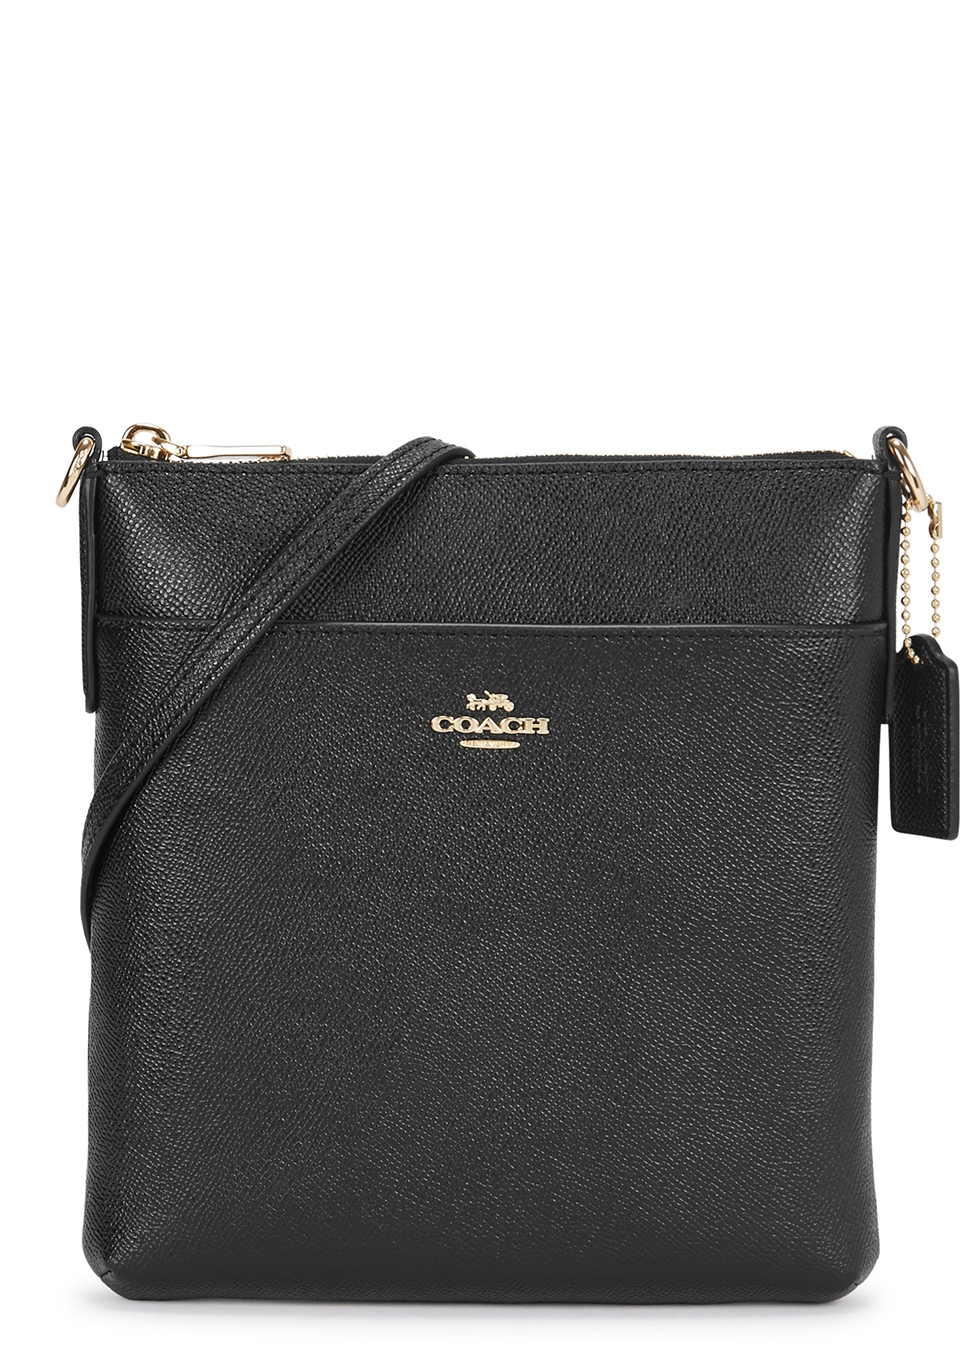 Black leather cross-body bag - Coach